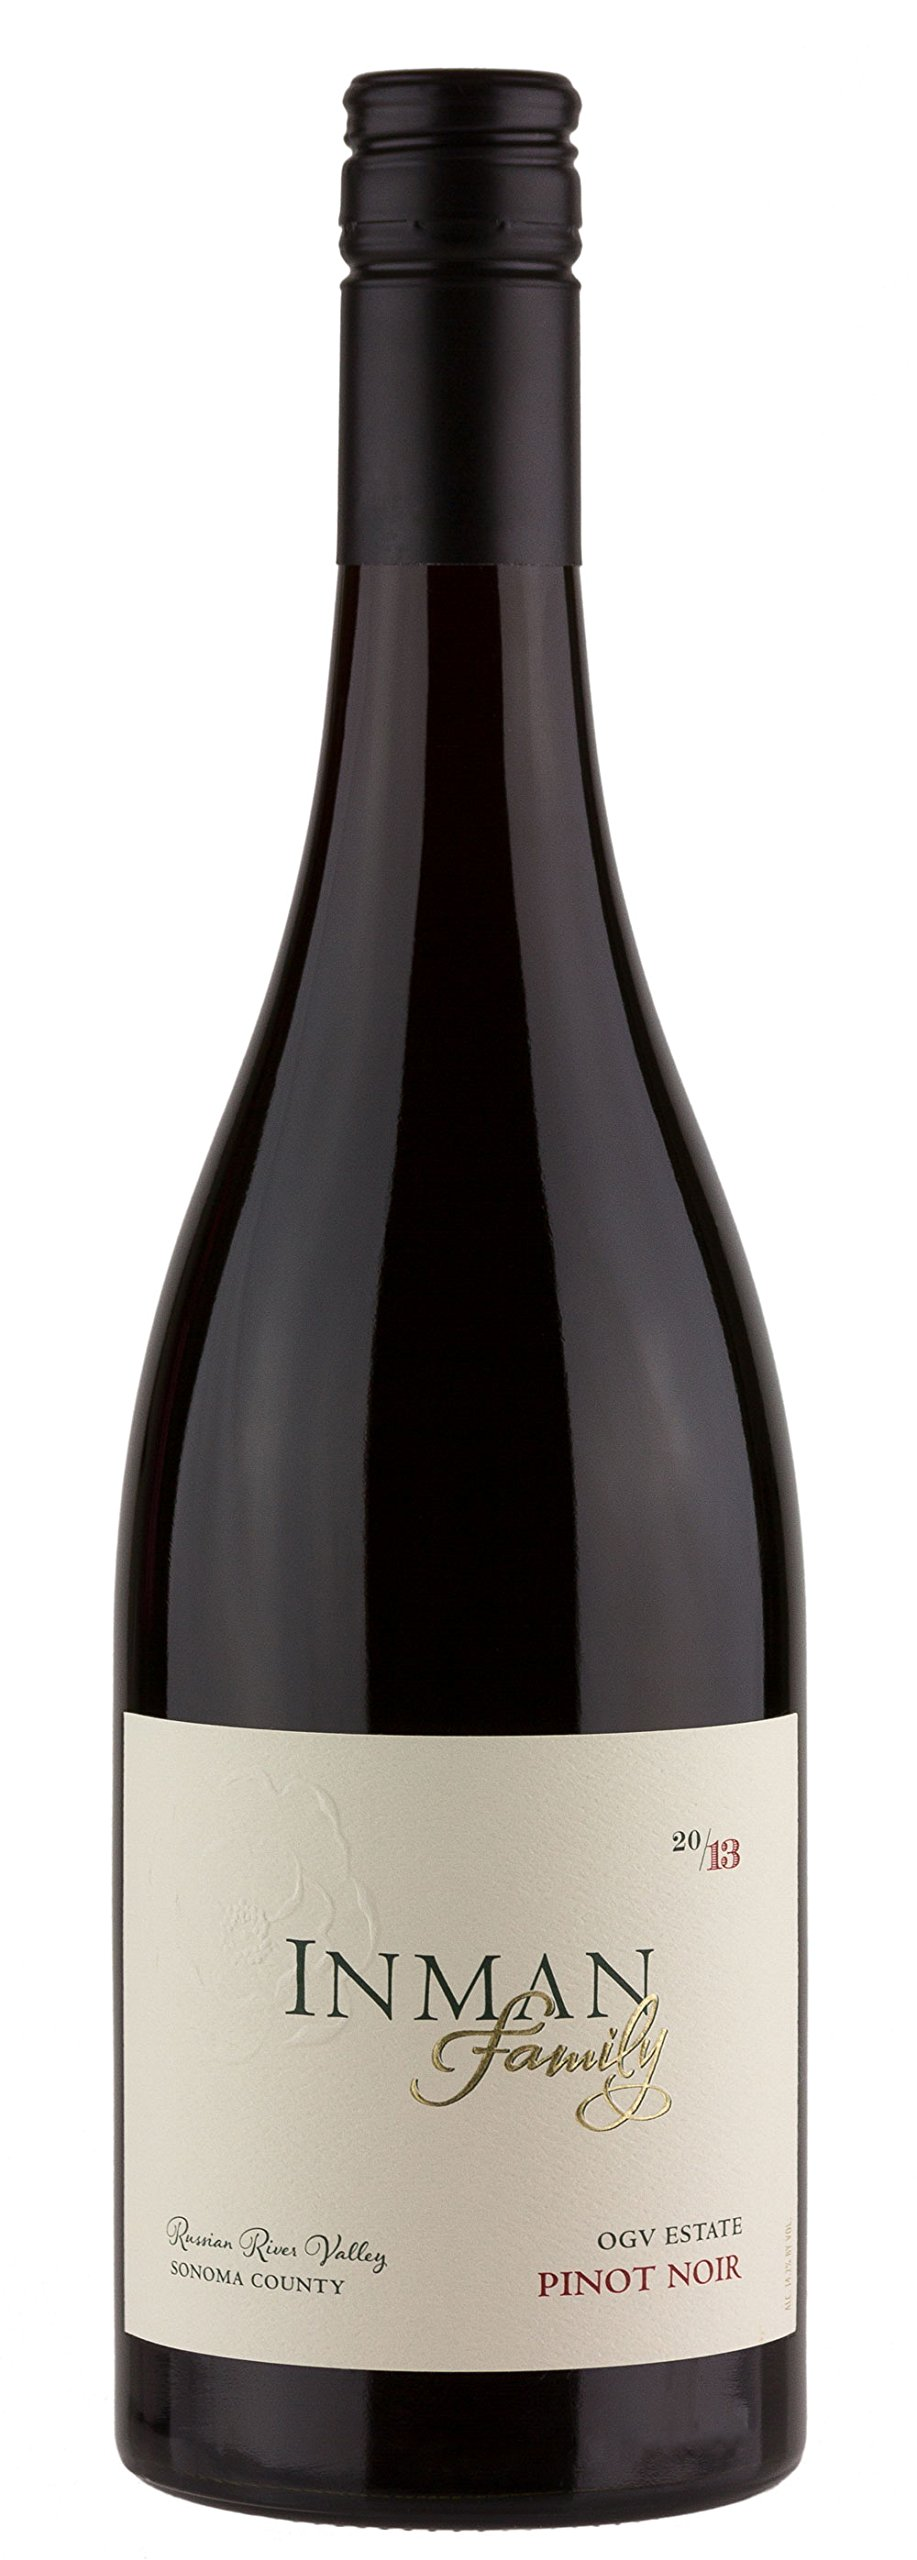 2013 Inman Family OGV Estate Russian River Valley Pinot Noir 750 mL Wine